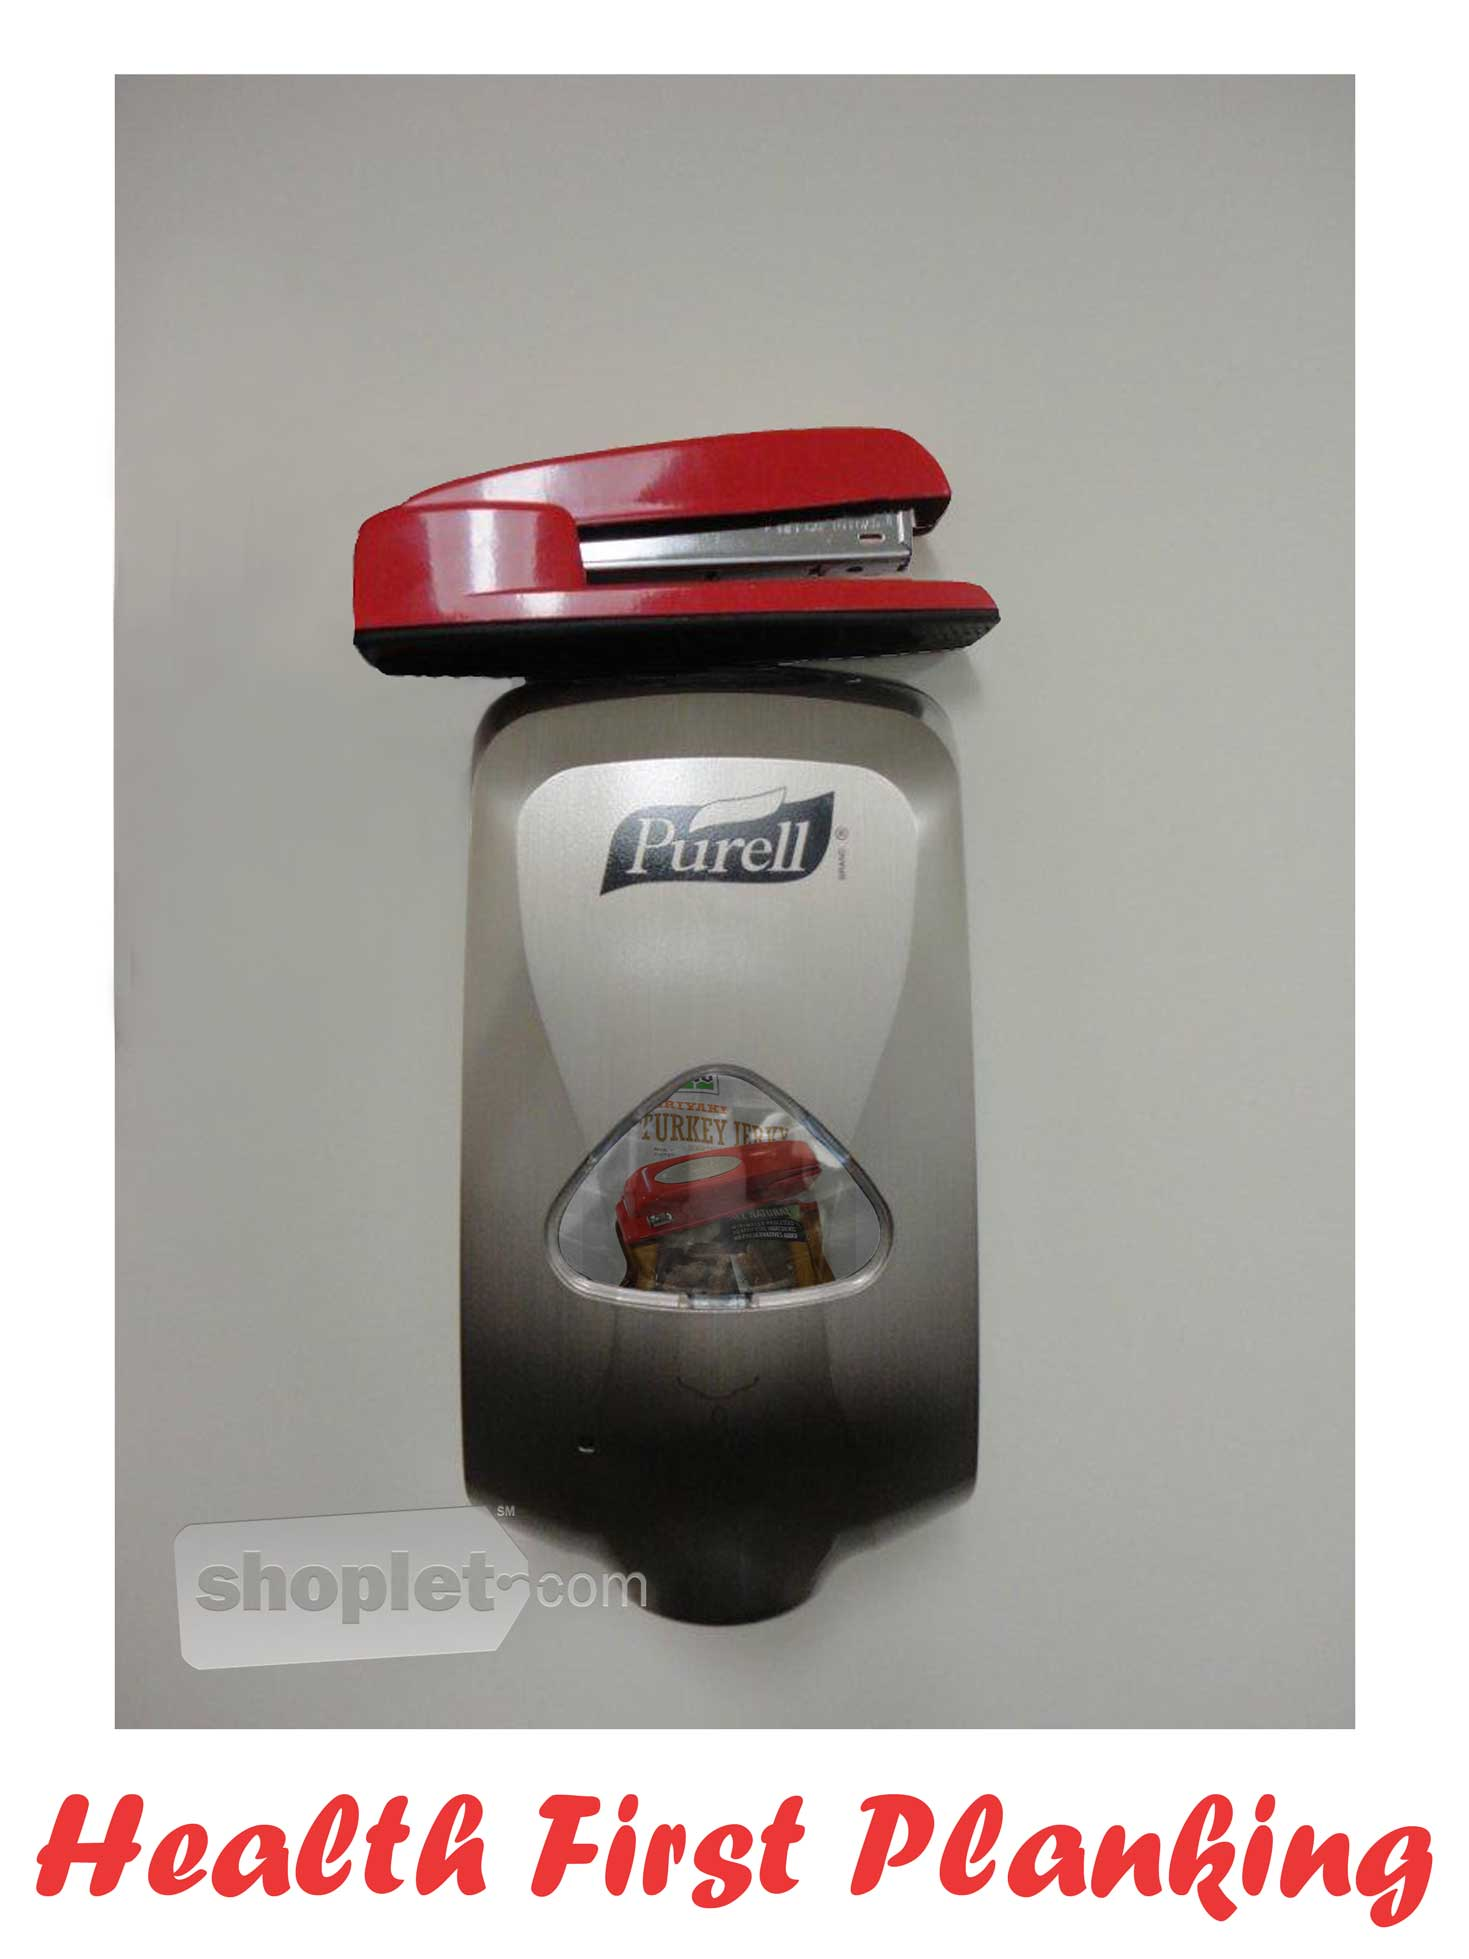 Shoplet Planking Stapler Wall Sanitizer